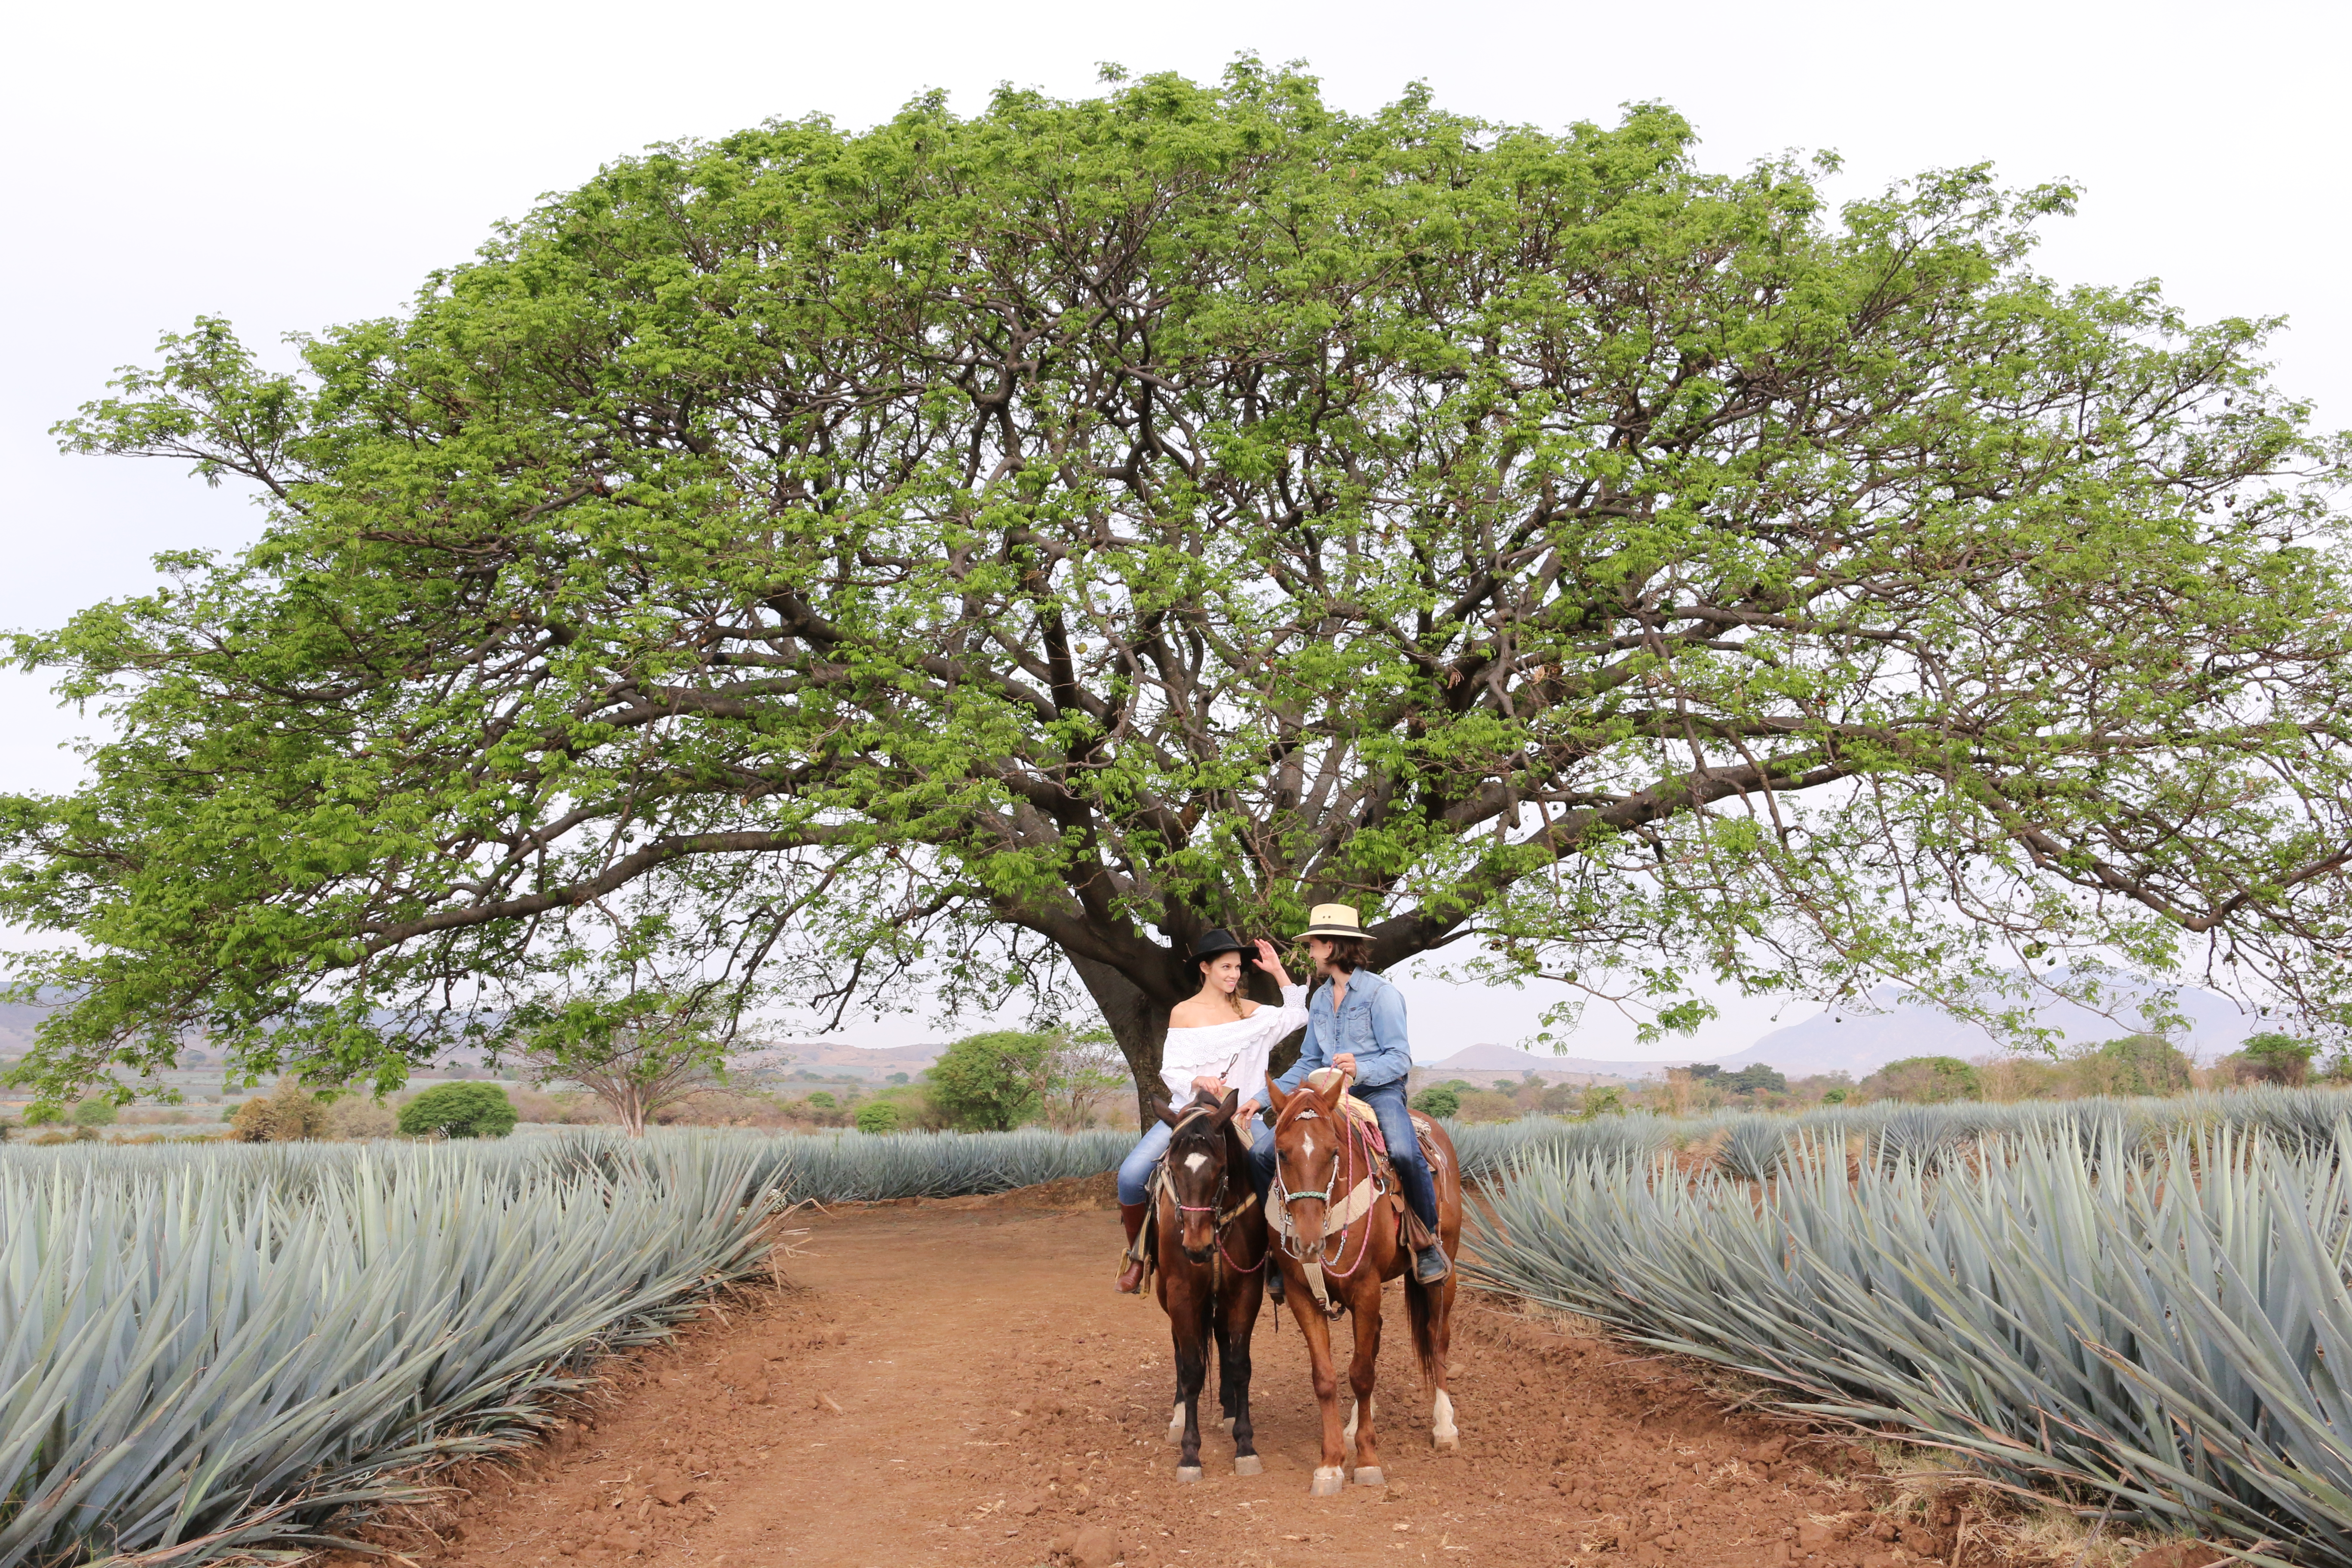 Agave fields with horses. Photo courtesy of the Florentine Opera Company.